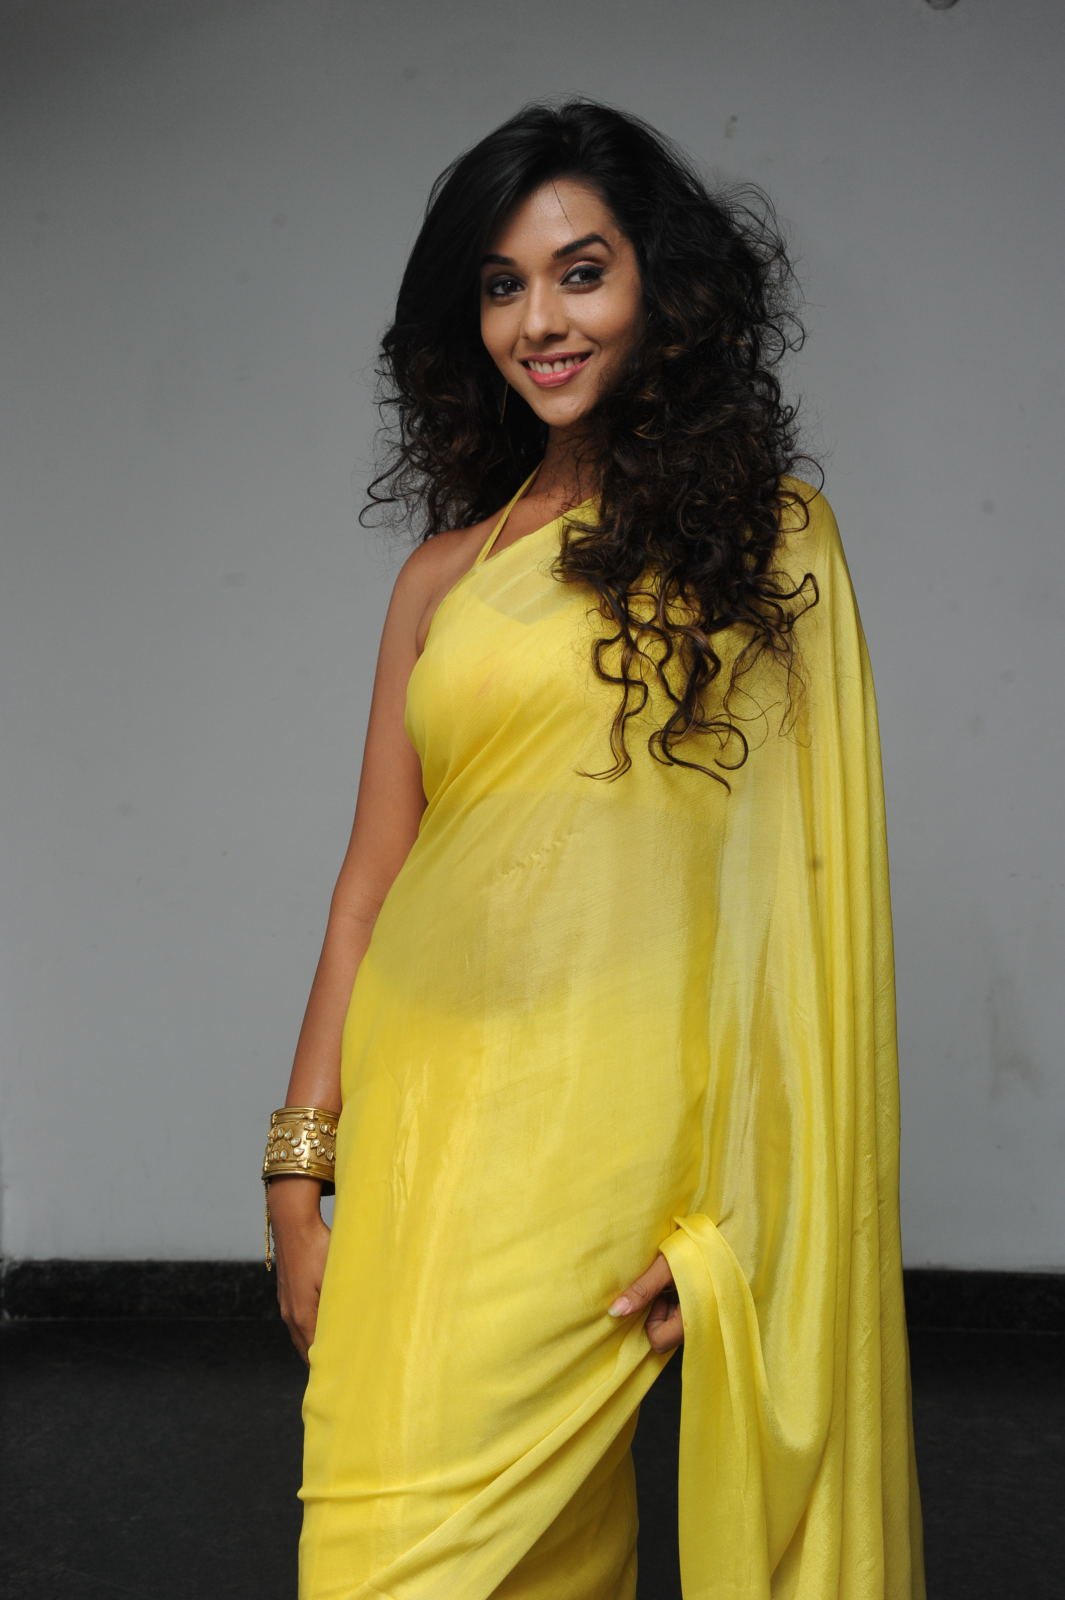 anu priya actress anu priya yellow saree photos saree photos actress